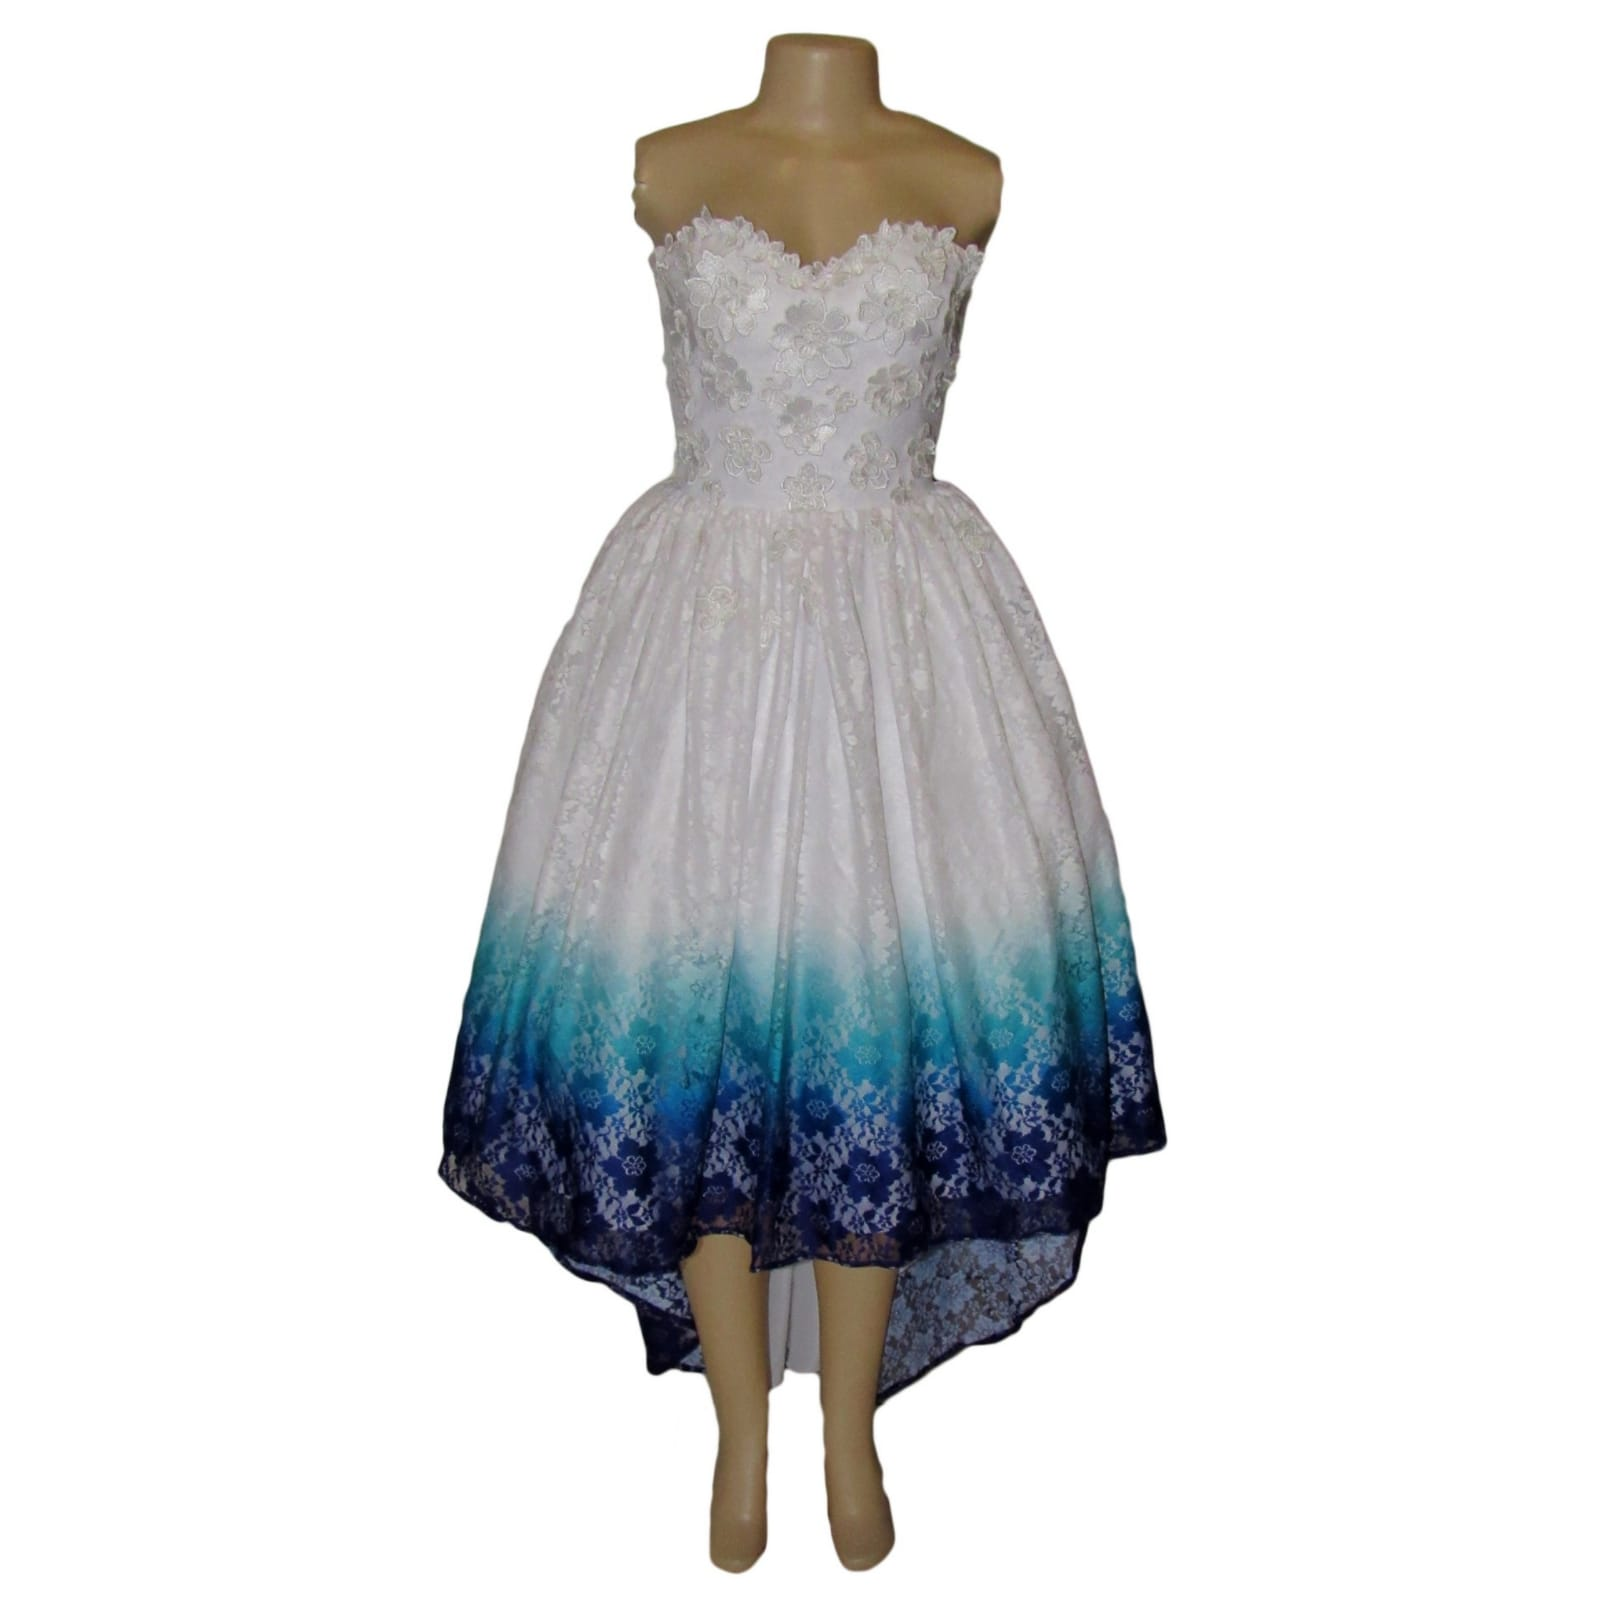 White ombre high low boob tube lace prom dress 6 white ombre high low boob tube lace dress, in blue, purple and turquoise with 3d lace detail on the bodice. Sweetheart neckline, straight back and a bit of volume.